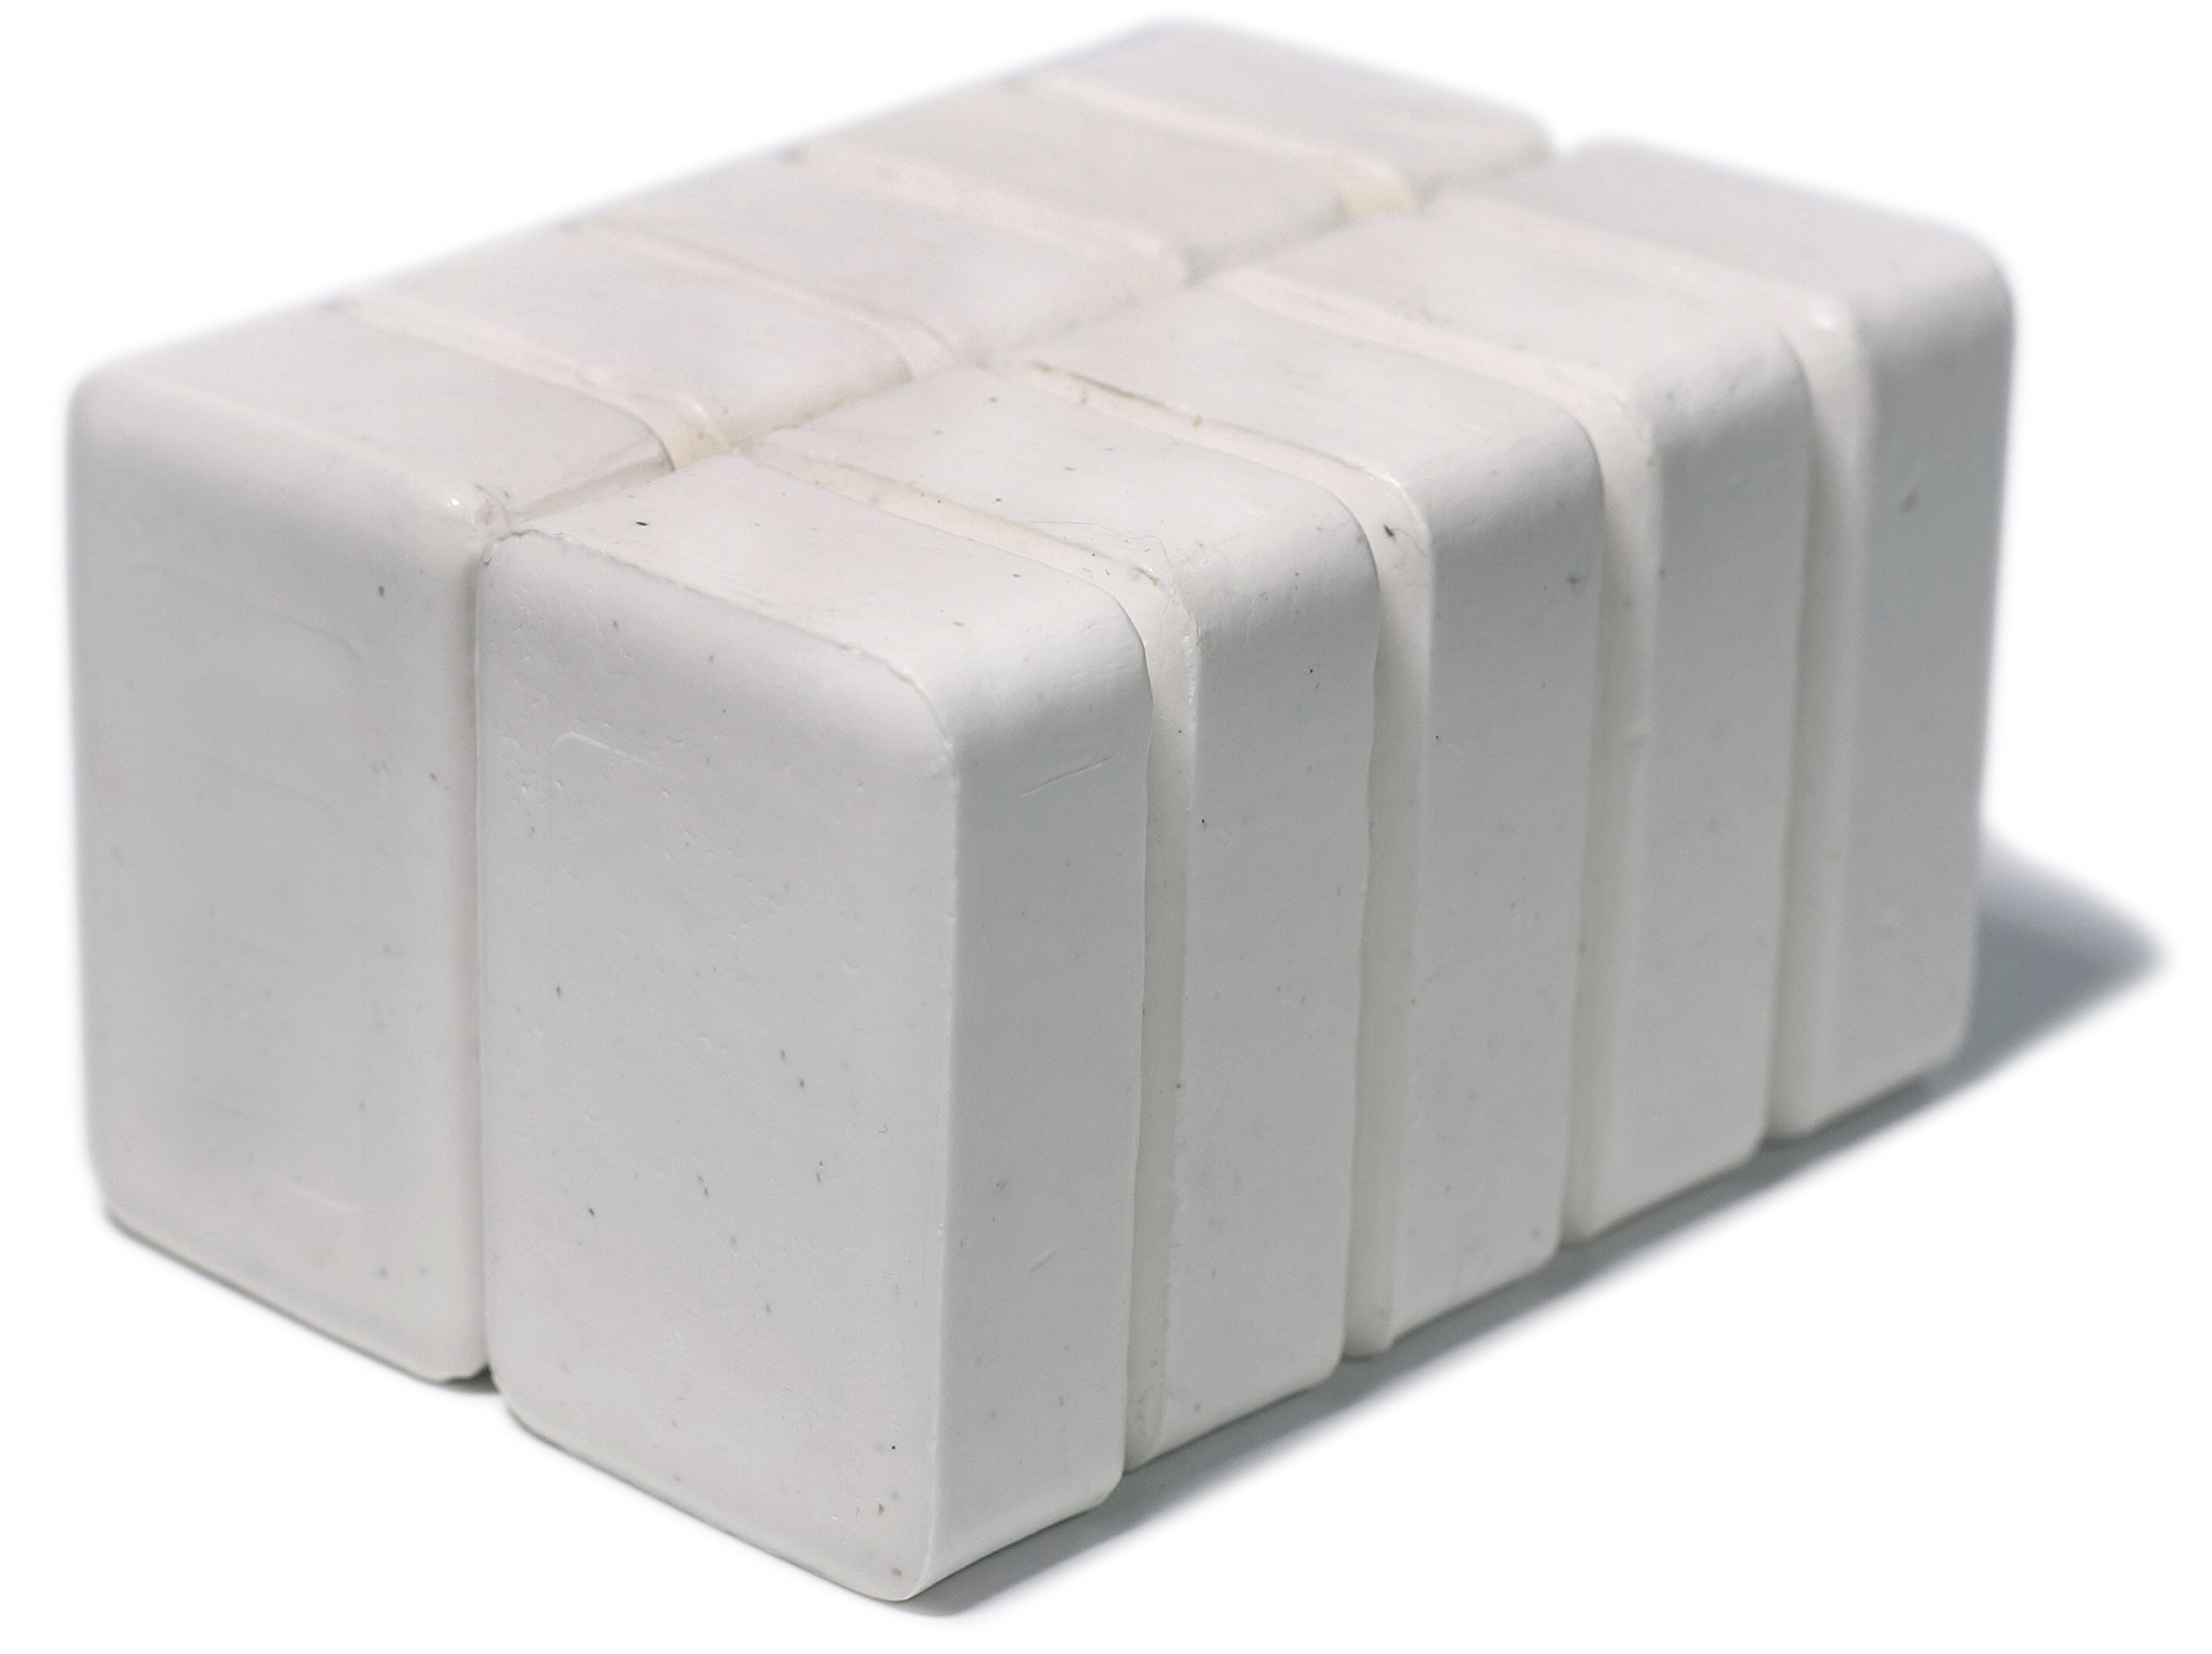 Set of 10 DermaHarmony 2% Pyrithione Zinc (ZnP) Bar Soap 4 oz - Crafted for Those with Skin Conditions - Seborrheic Dermatitis, Dandruff, etc.